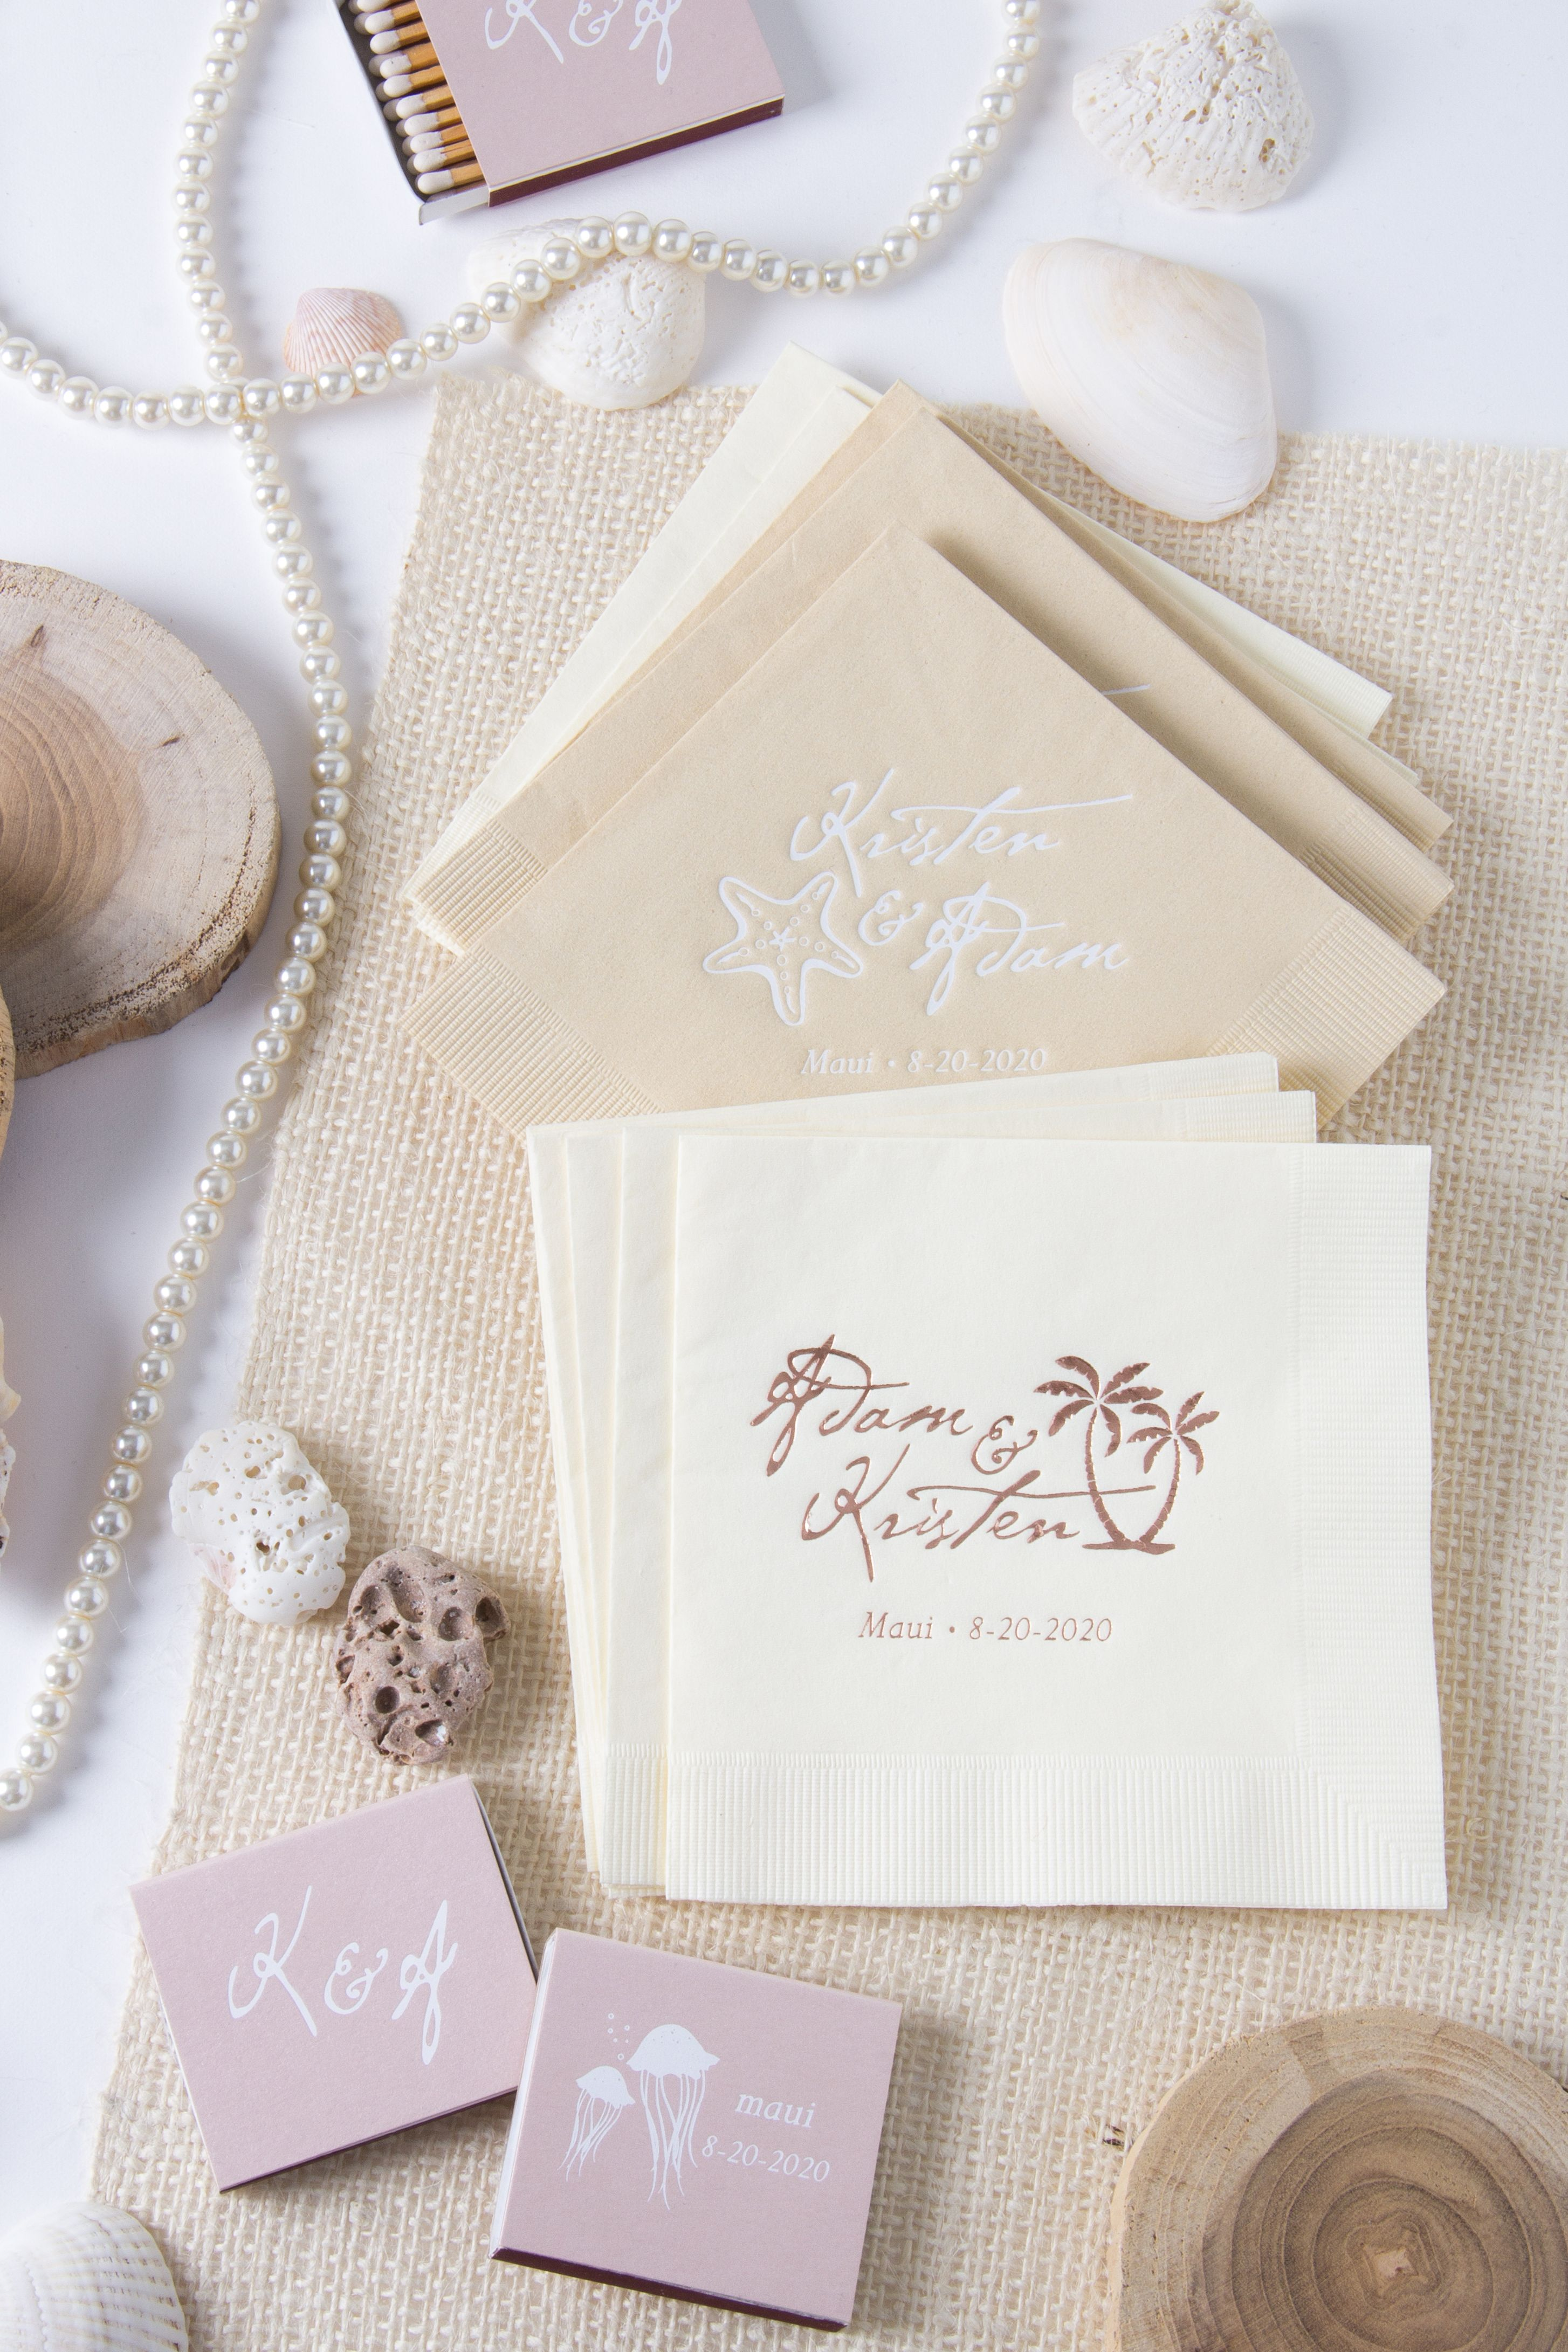 A beach/destination wedding party must-haves. Explore more options ...